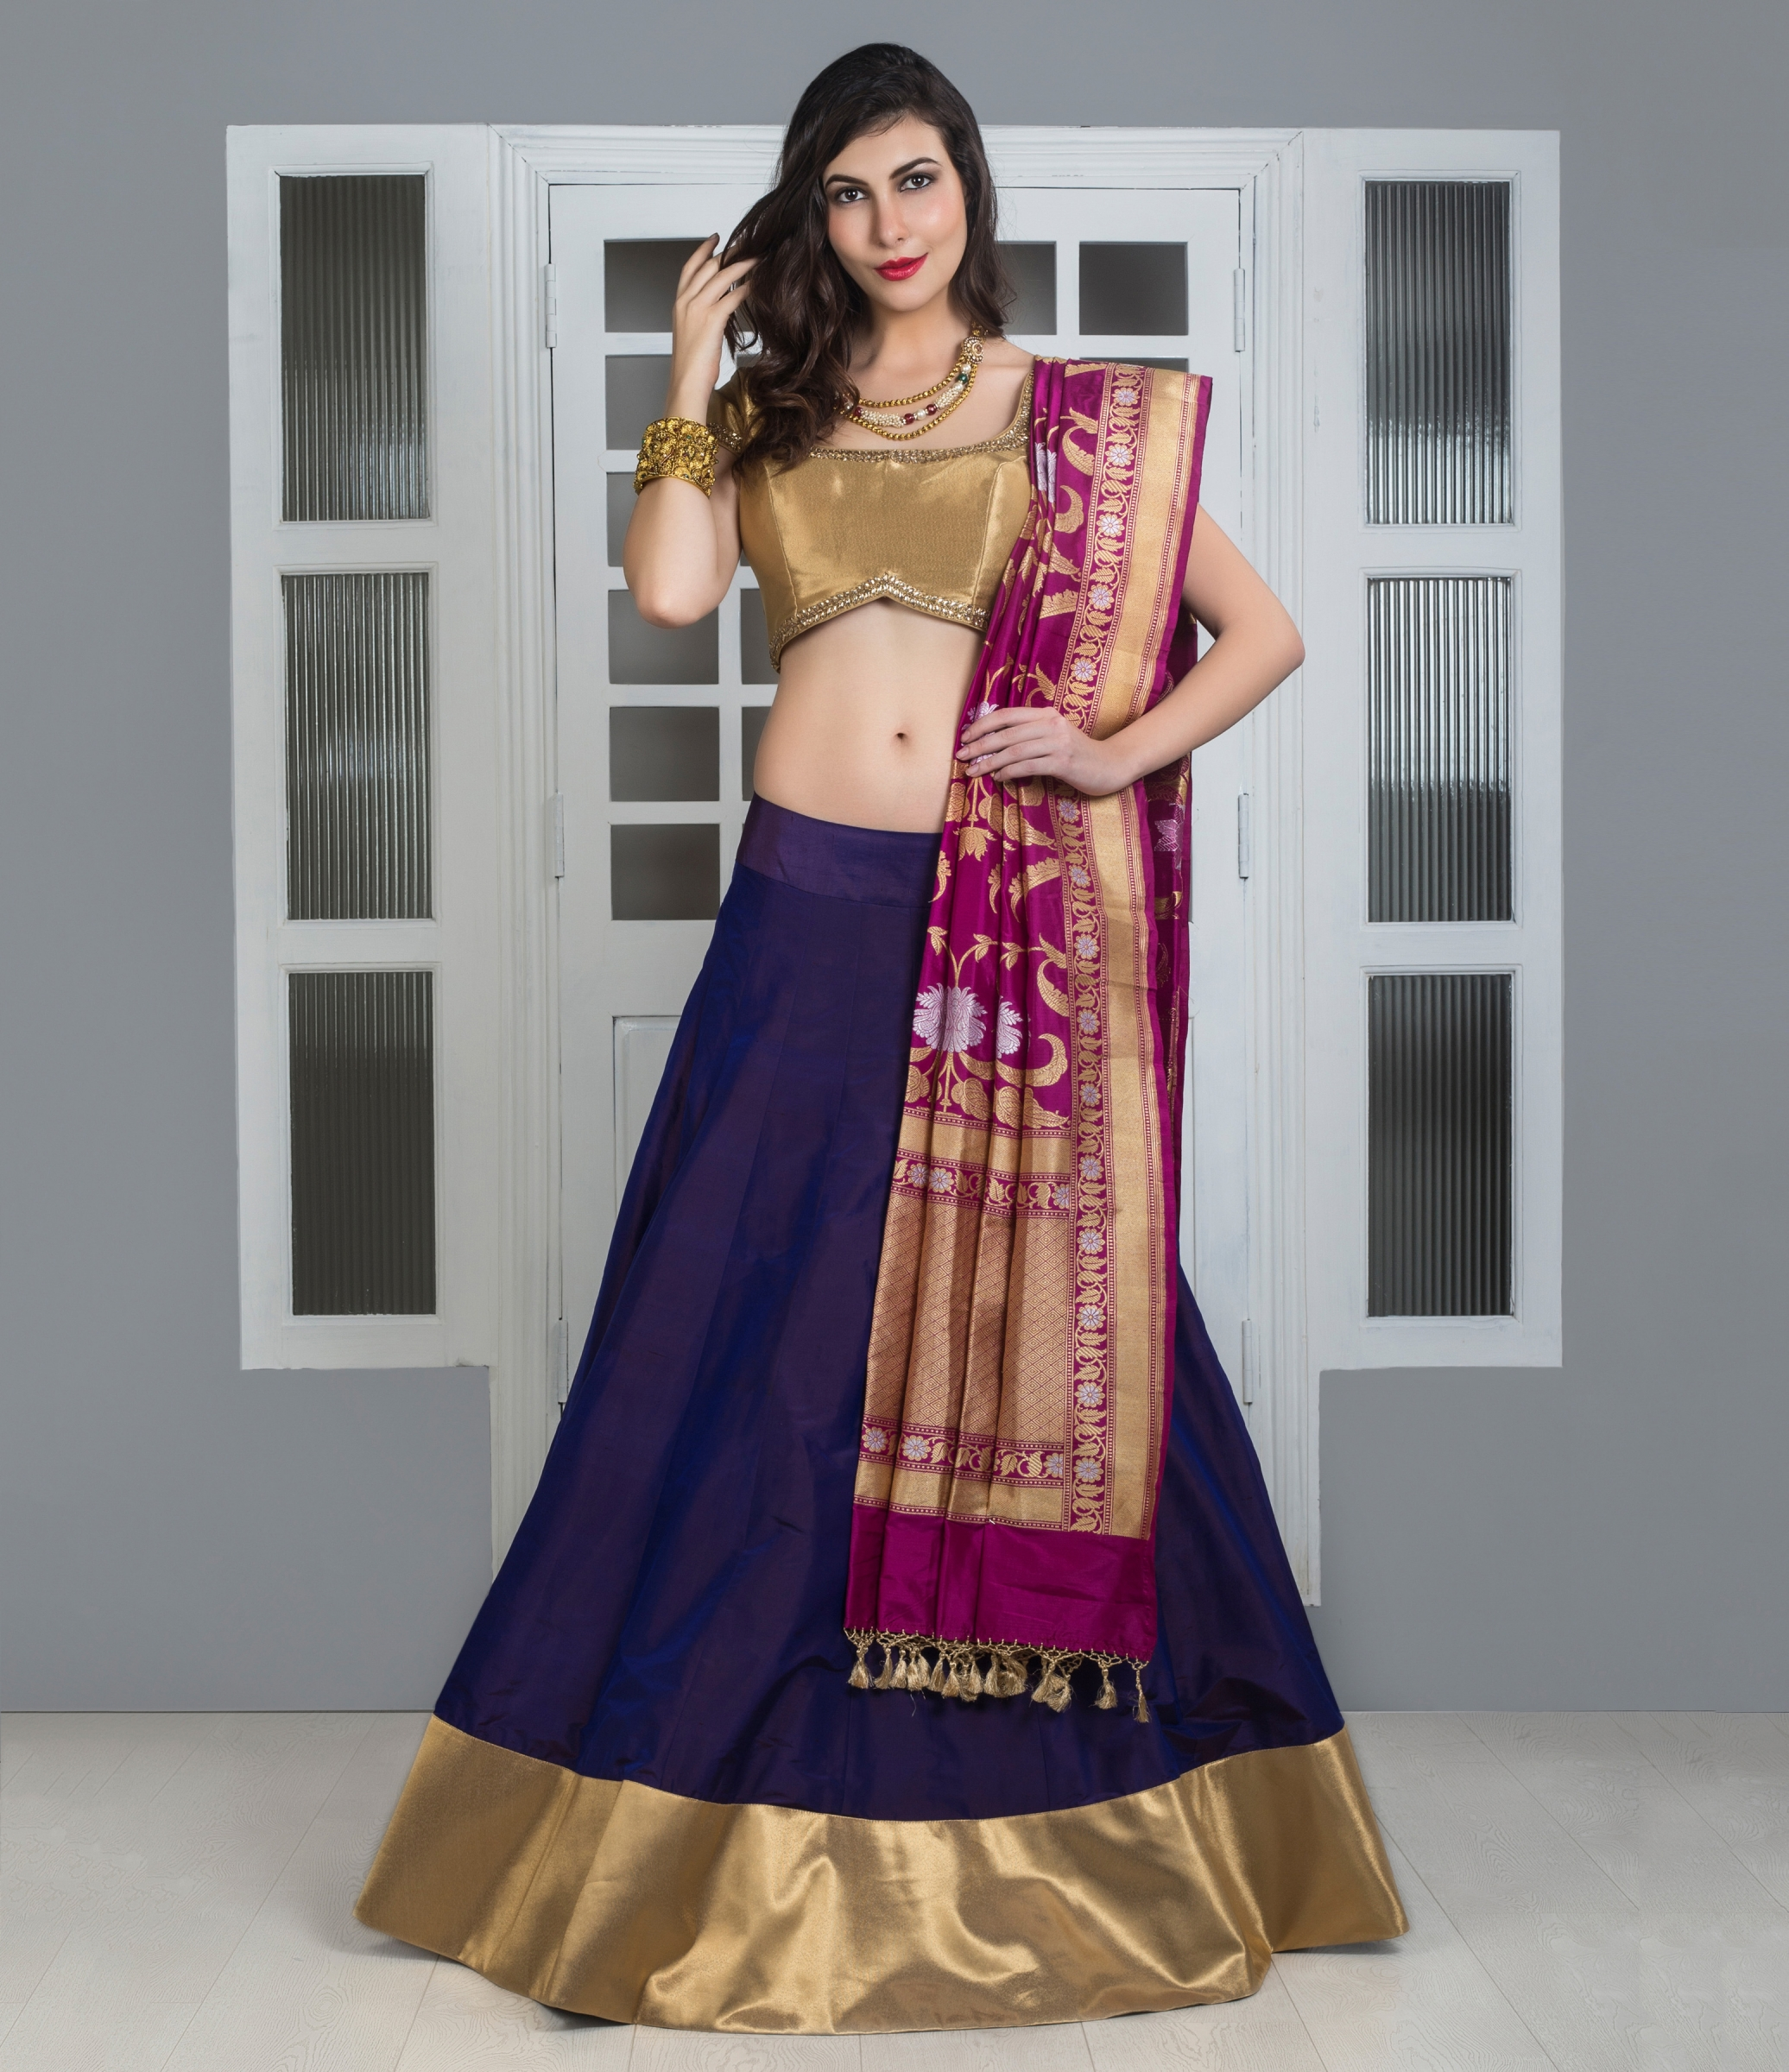 dbc8aee89de Buy Gold And Purple Pure Silk Lehenga With Banarasi Dupatta Designer  Lehengas. Shipping Worldwide.